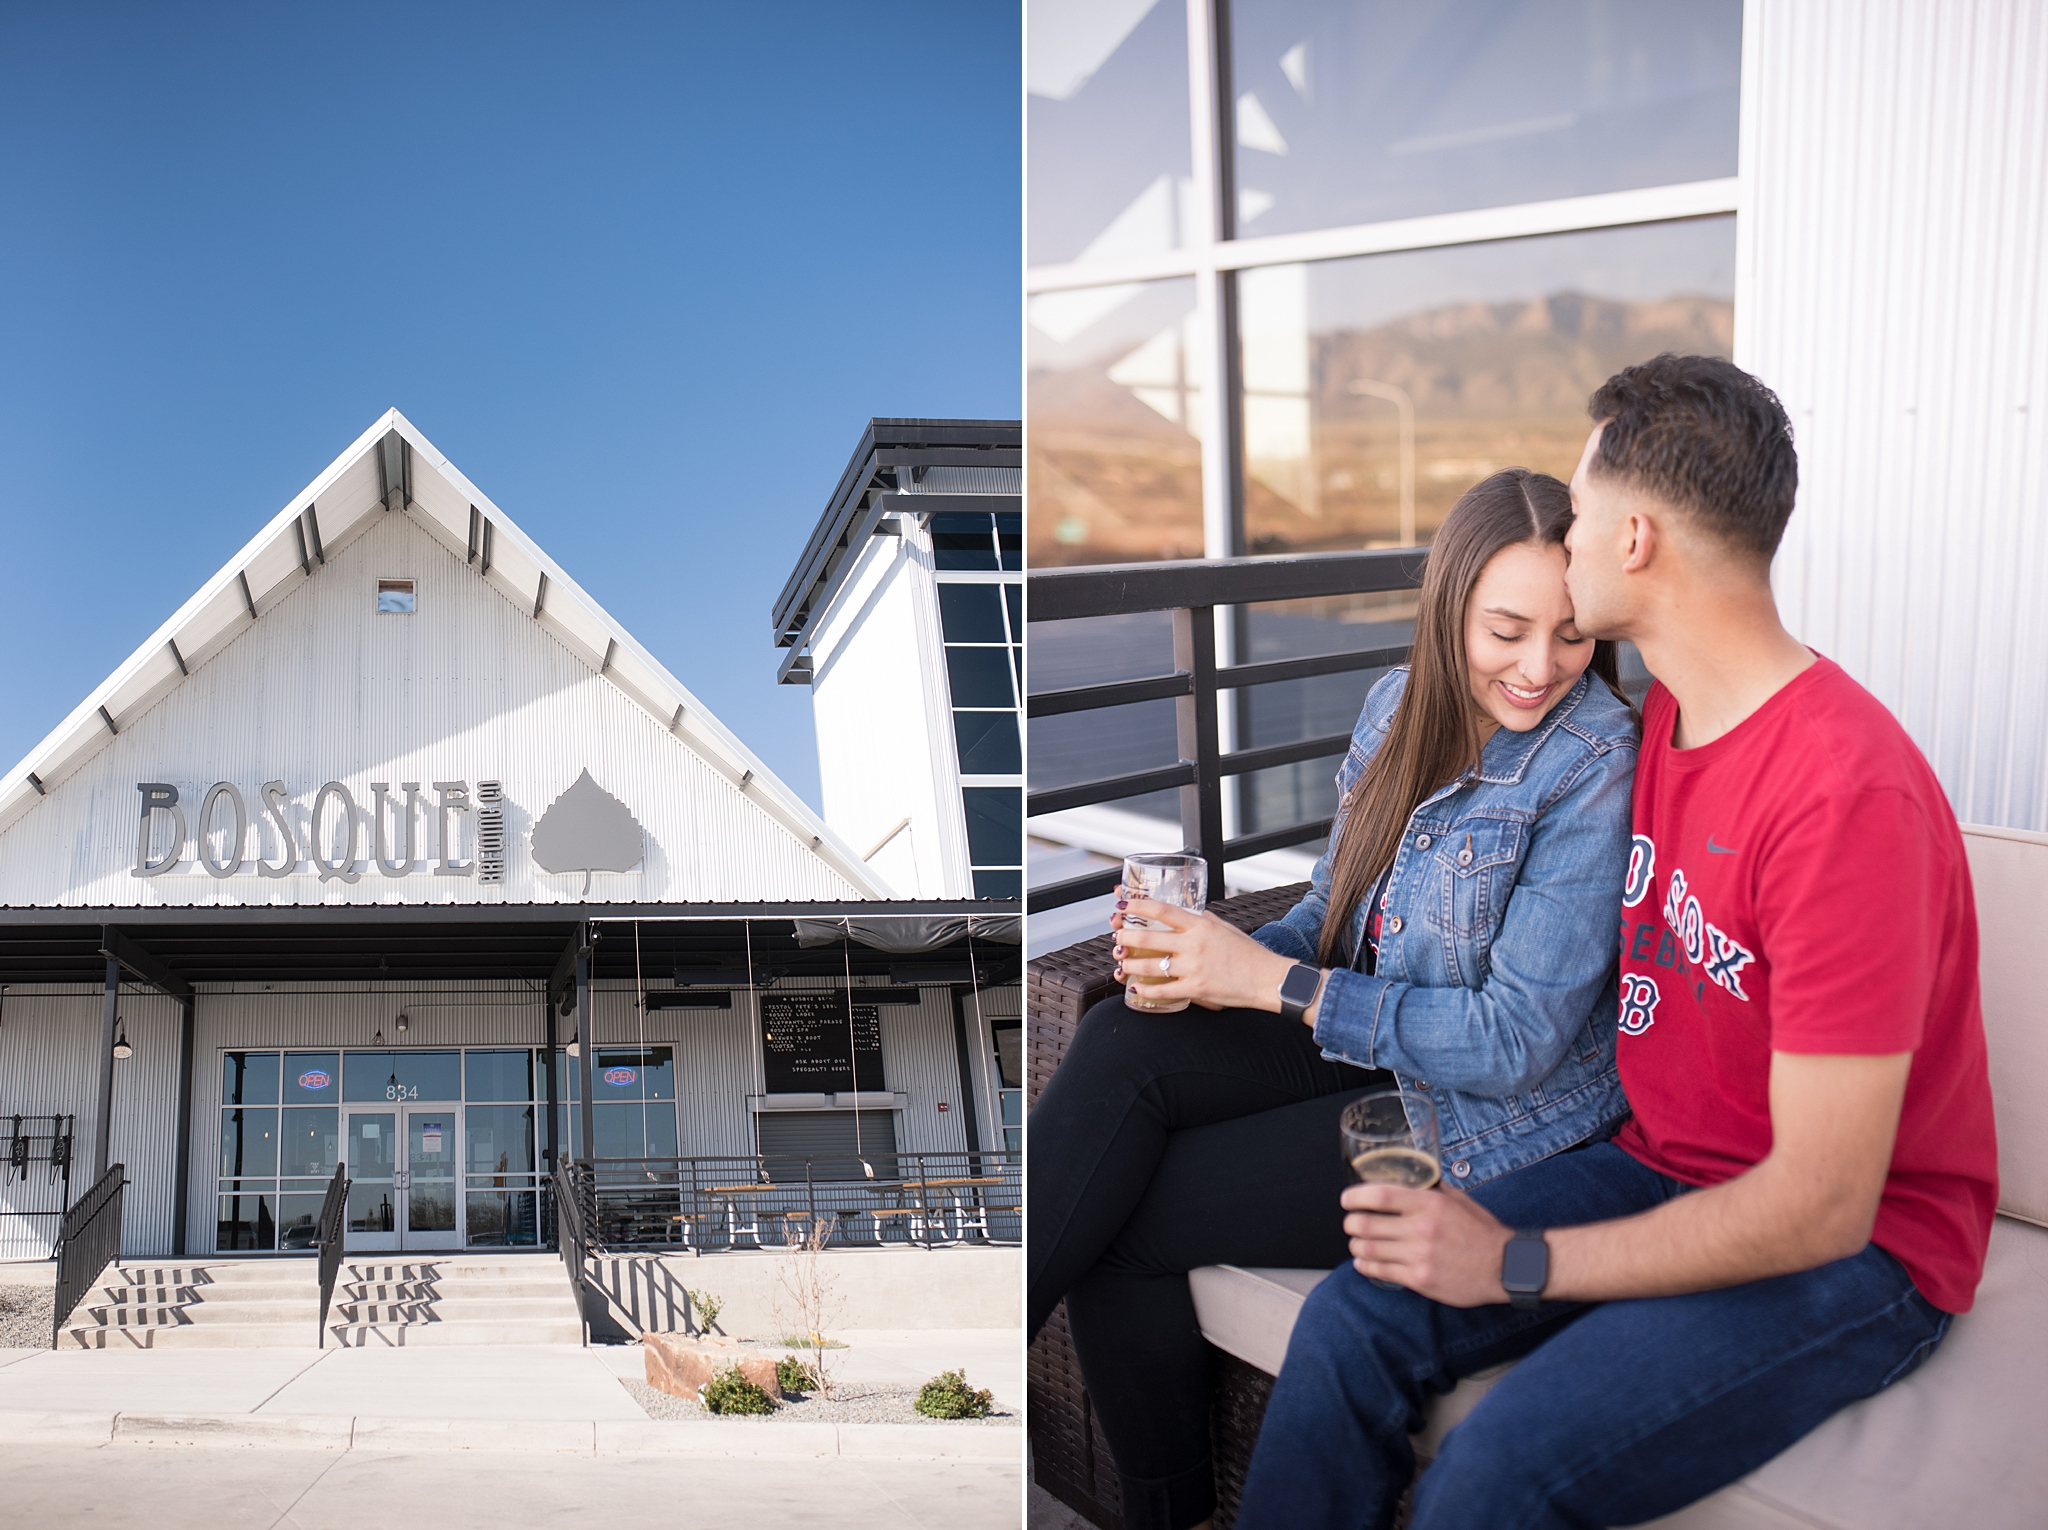 bosque brewery engagement session placitas mountains foothills albuquerque wedding photography new mexico wedding photographer kayla kitts photography_0005.jpg